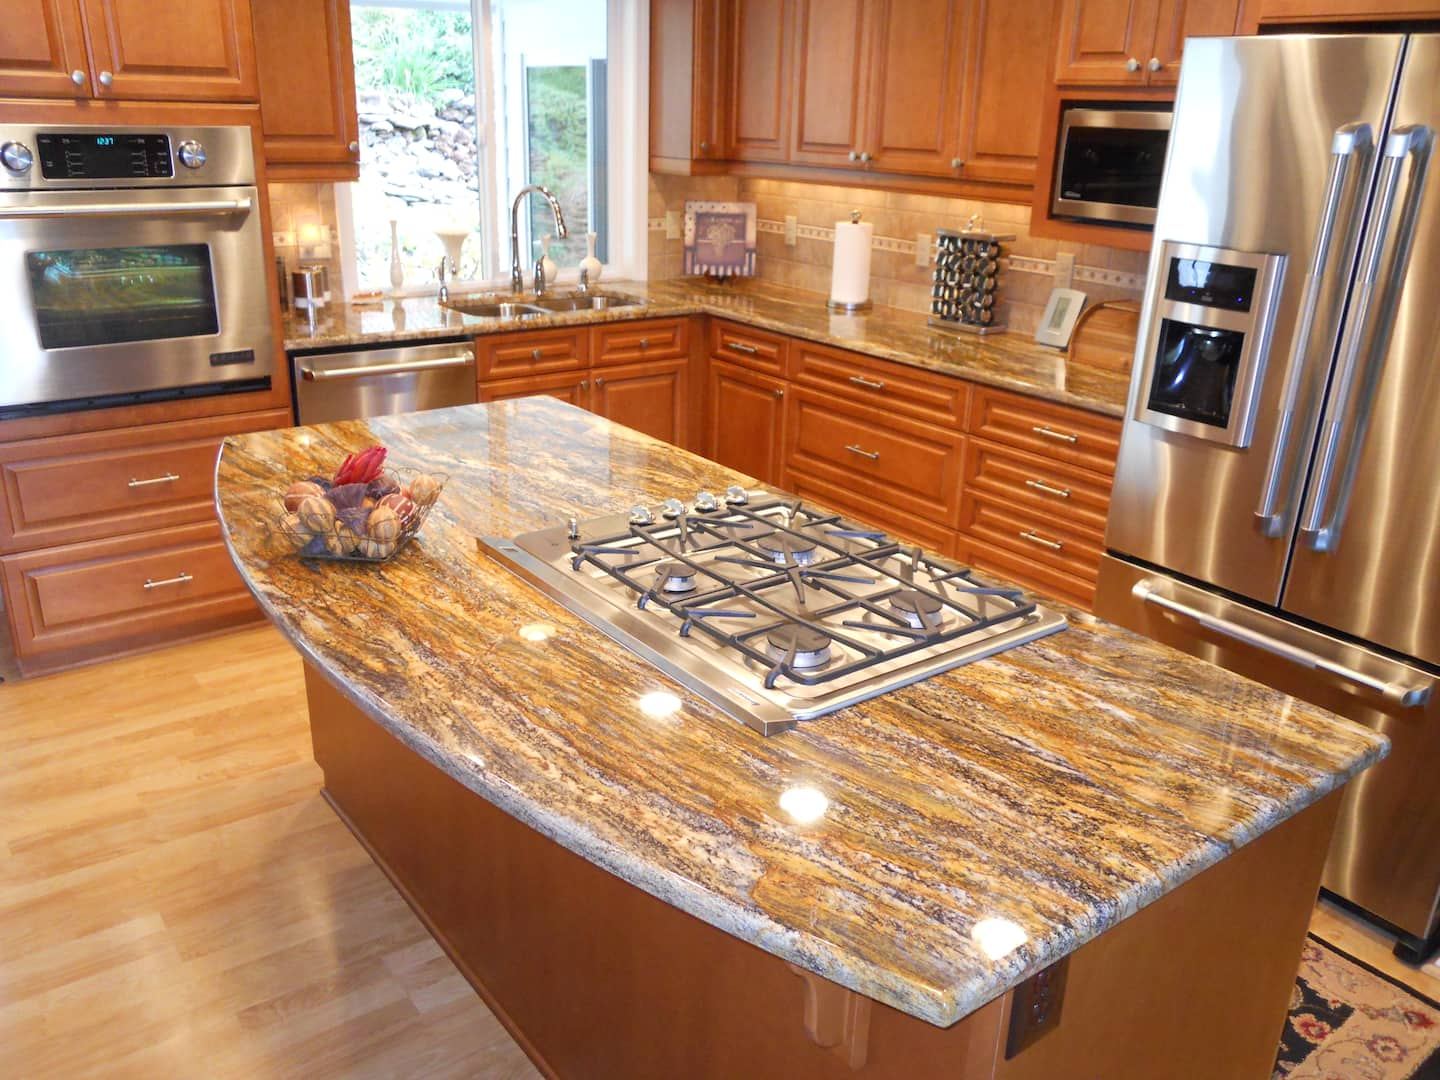 How Much Should A Kitchen Remodel Cost Angies List - How much is a kitchen remodel